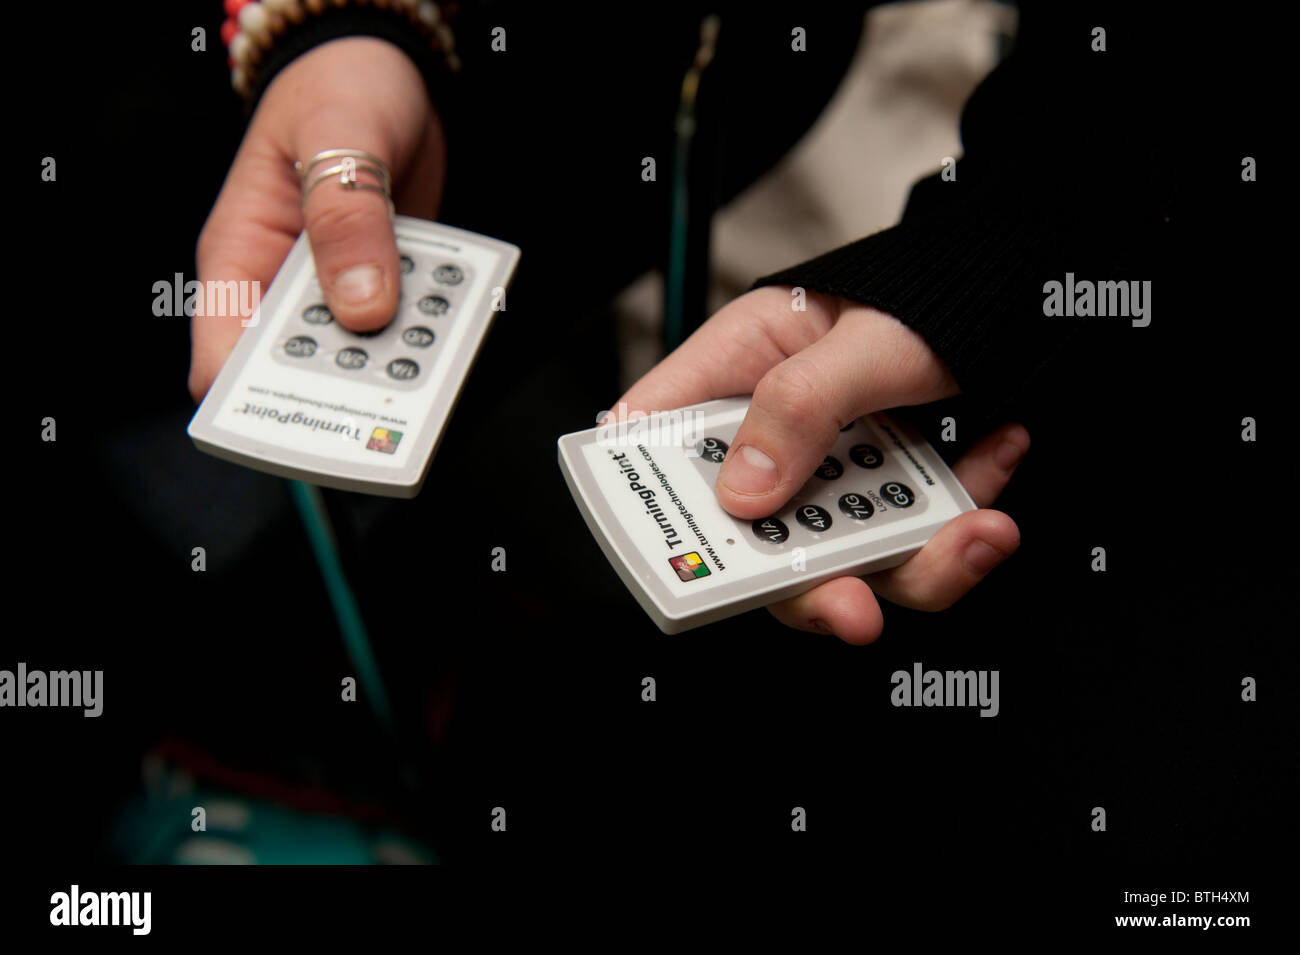 Using TurningPoint interactive response electronic infrared IR voting handsets, UK - Stock Image